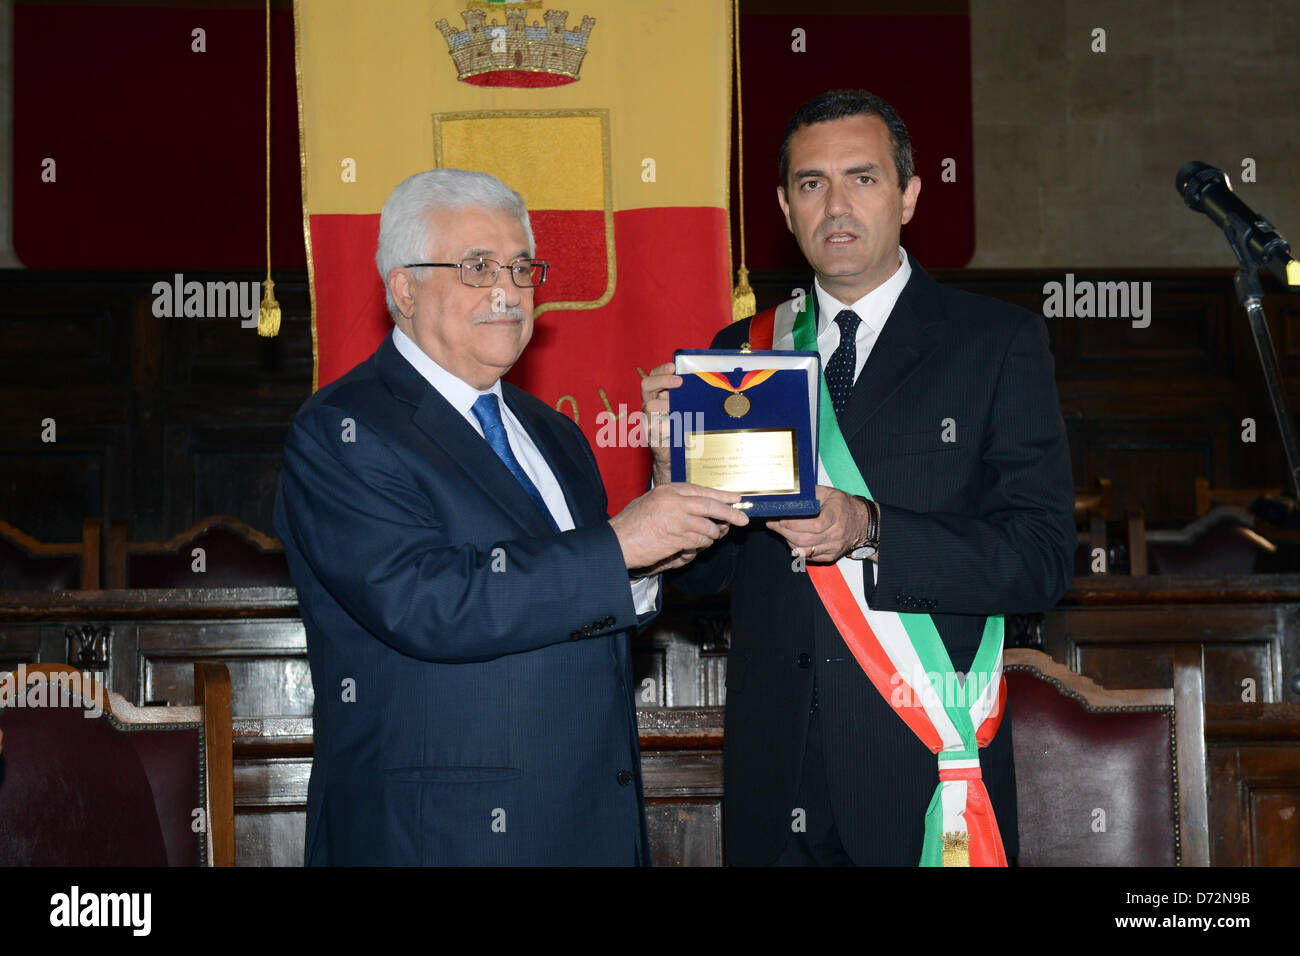 April 27, 2013 - Naples, Naples, Italy - Palestinian President Mahmoud Abbas (Abu Mazen) receives Medal of Honor Stock Photo